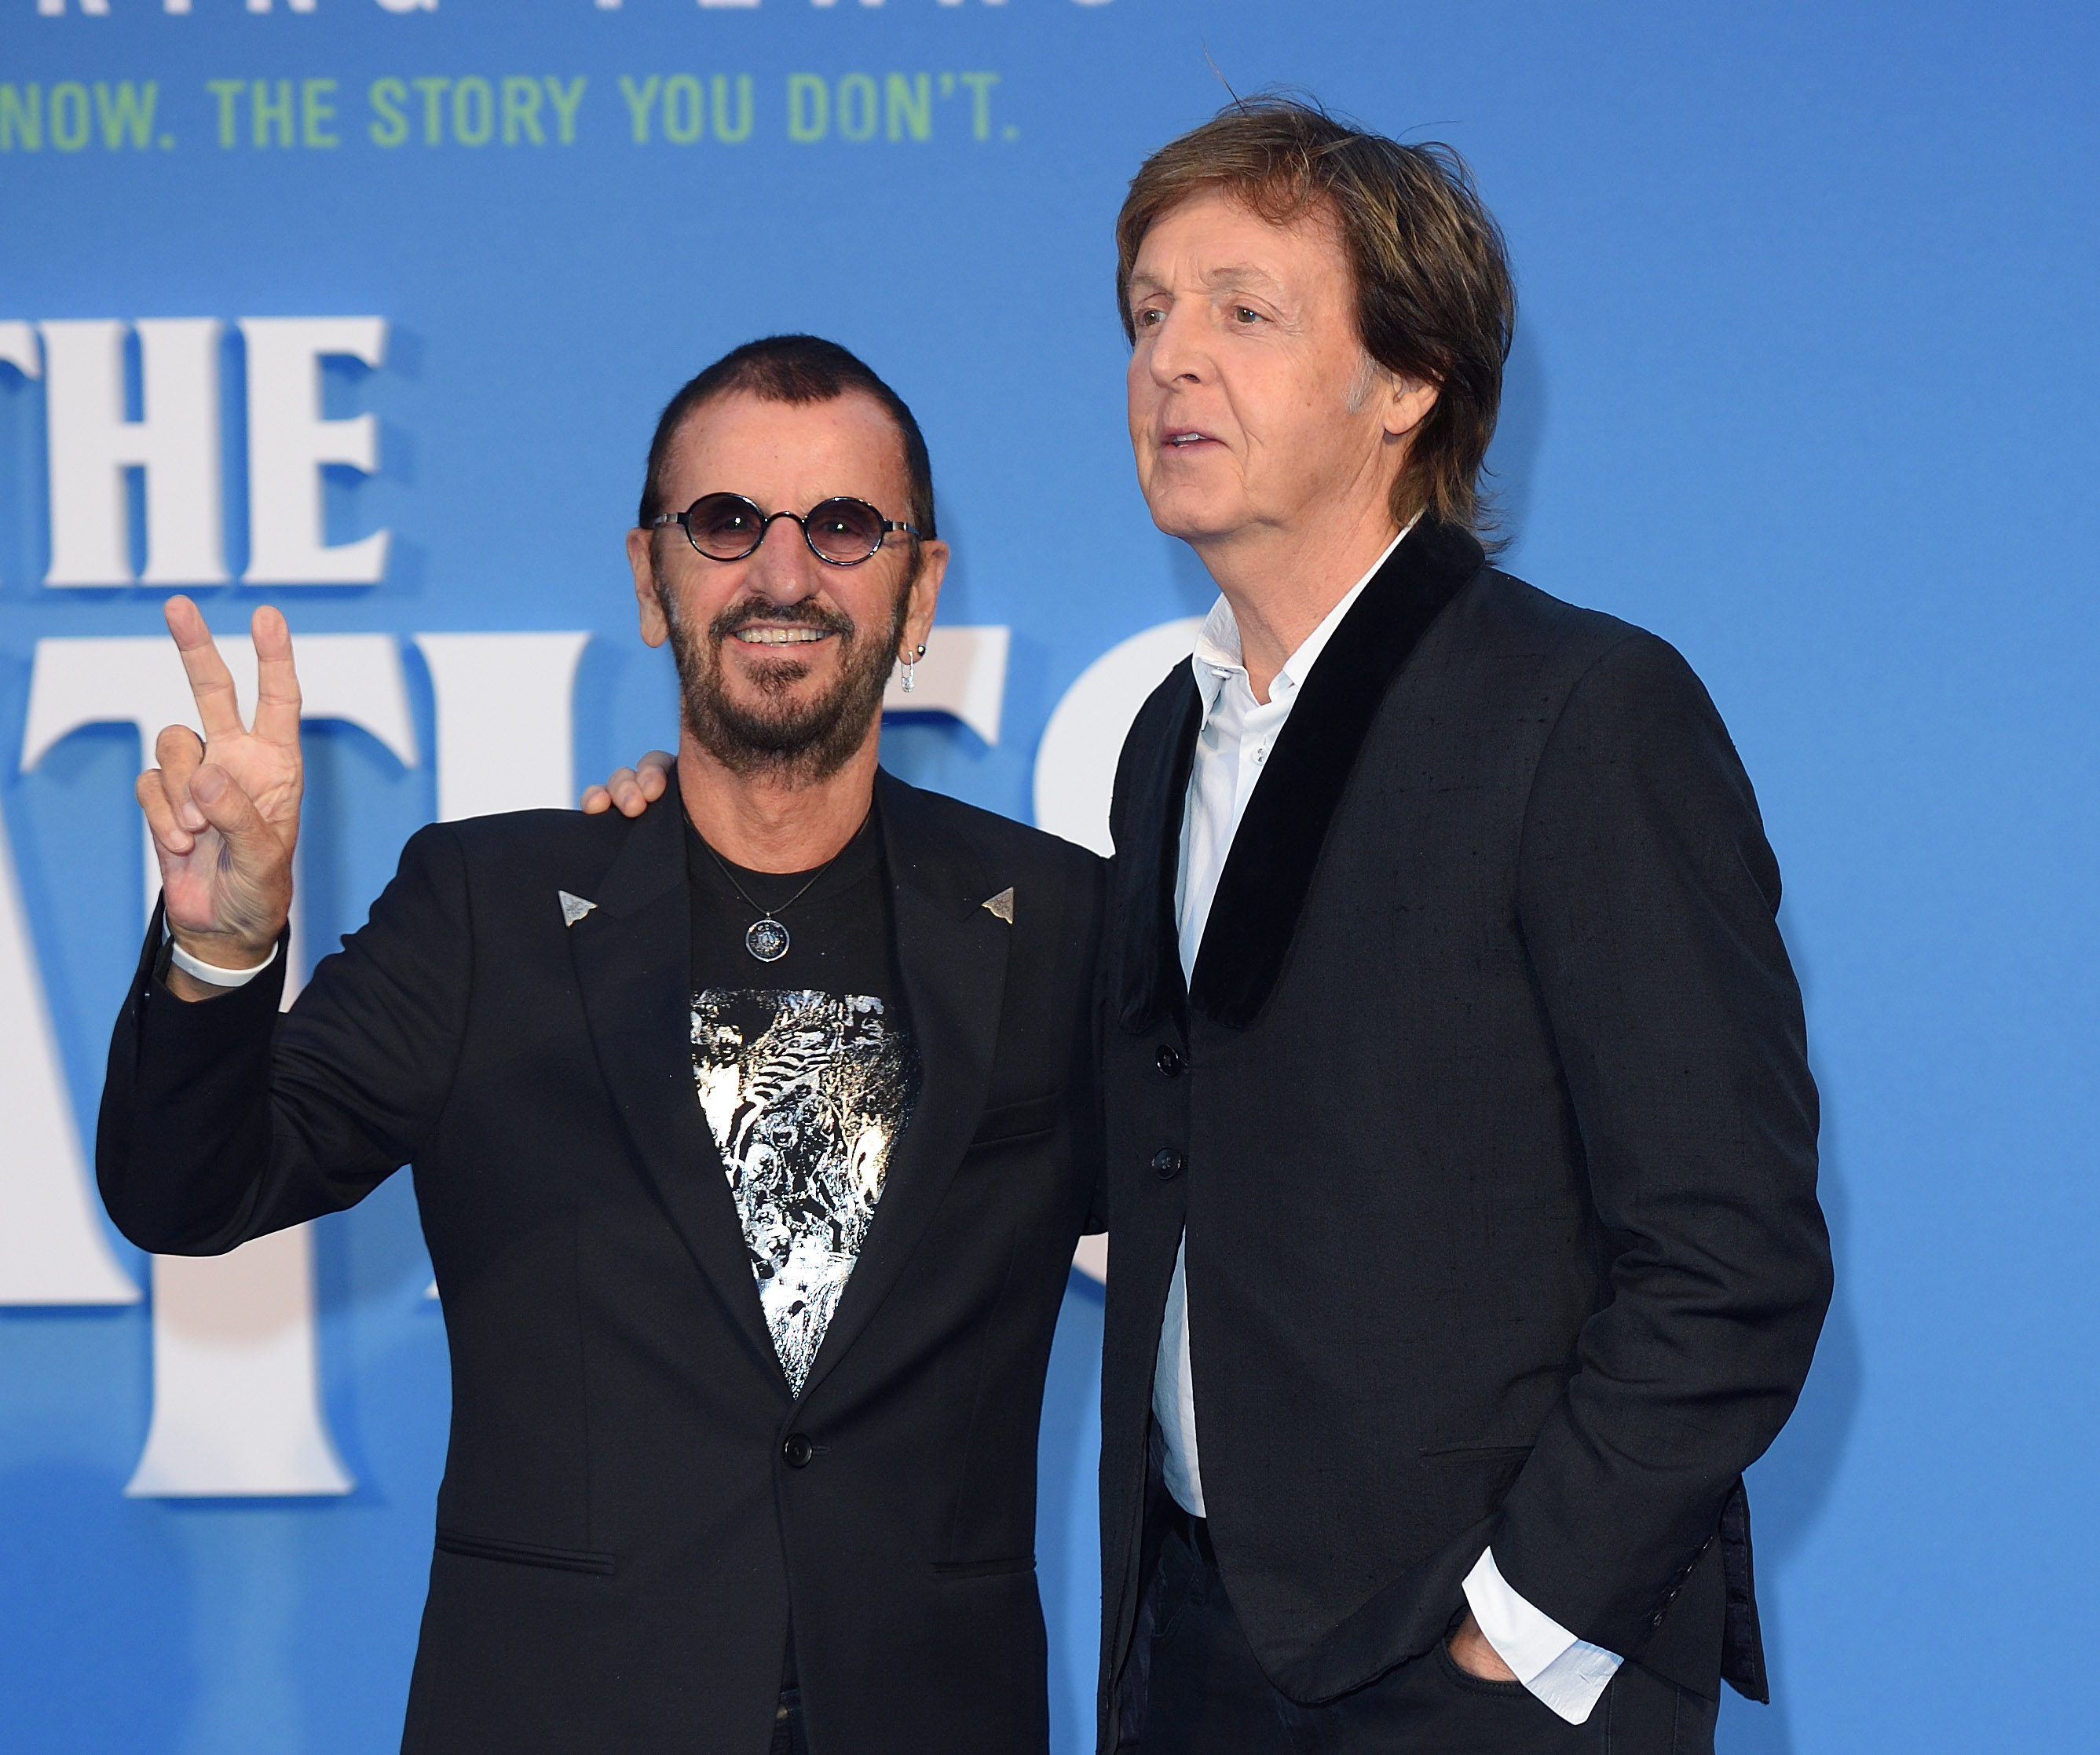 Former Beatles Bandmates Paul McCartney And Ringo Starr Reunited In The Studio This Weekend To Record New Music Together